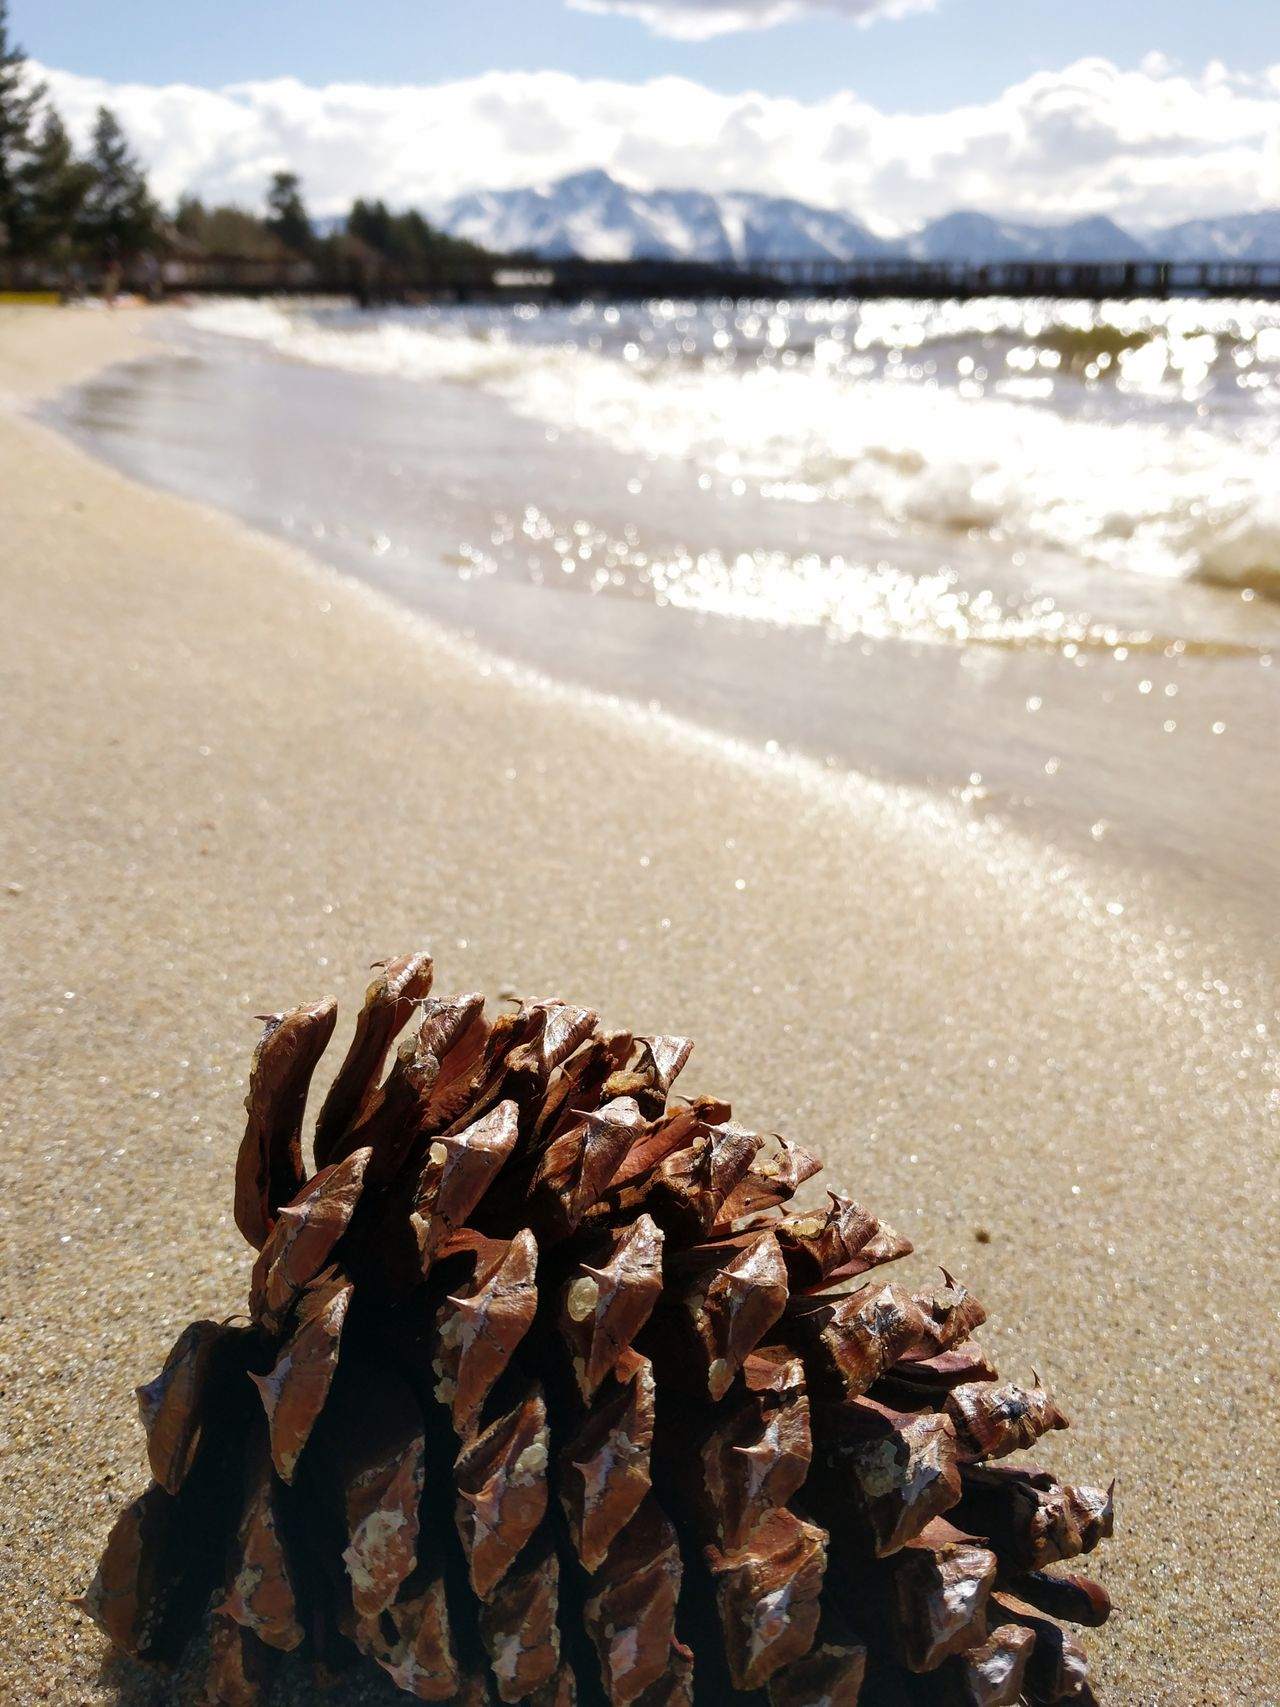 Alpine Beach California Alpine Lake Lake Mountains And Beach Summer Day Sky Beauty In Nature Outdoors Beach Sunlight Macro Waves Sierra Nevada Mountains Water Pine Cone Close-up Tranquillity Travel Tide Sand